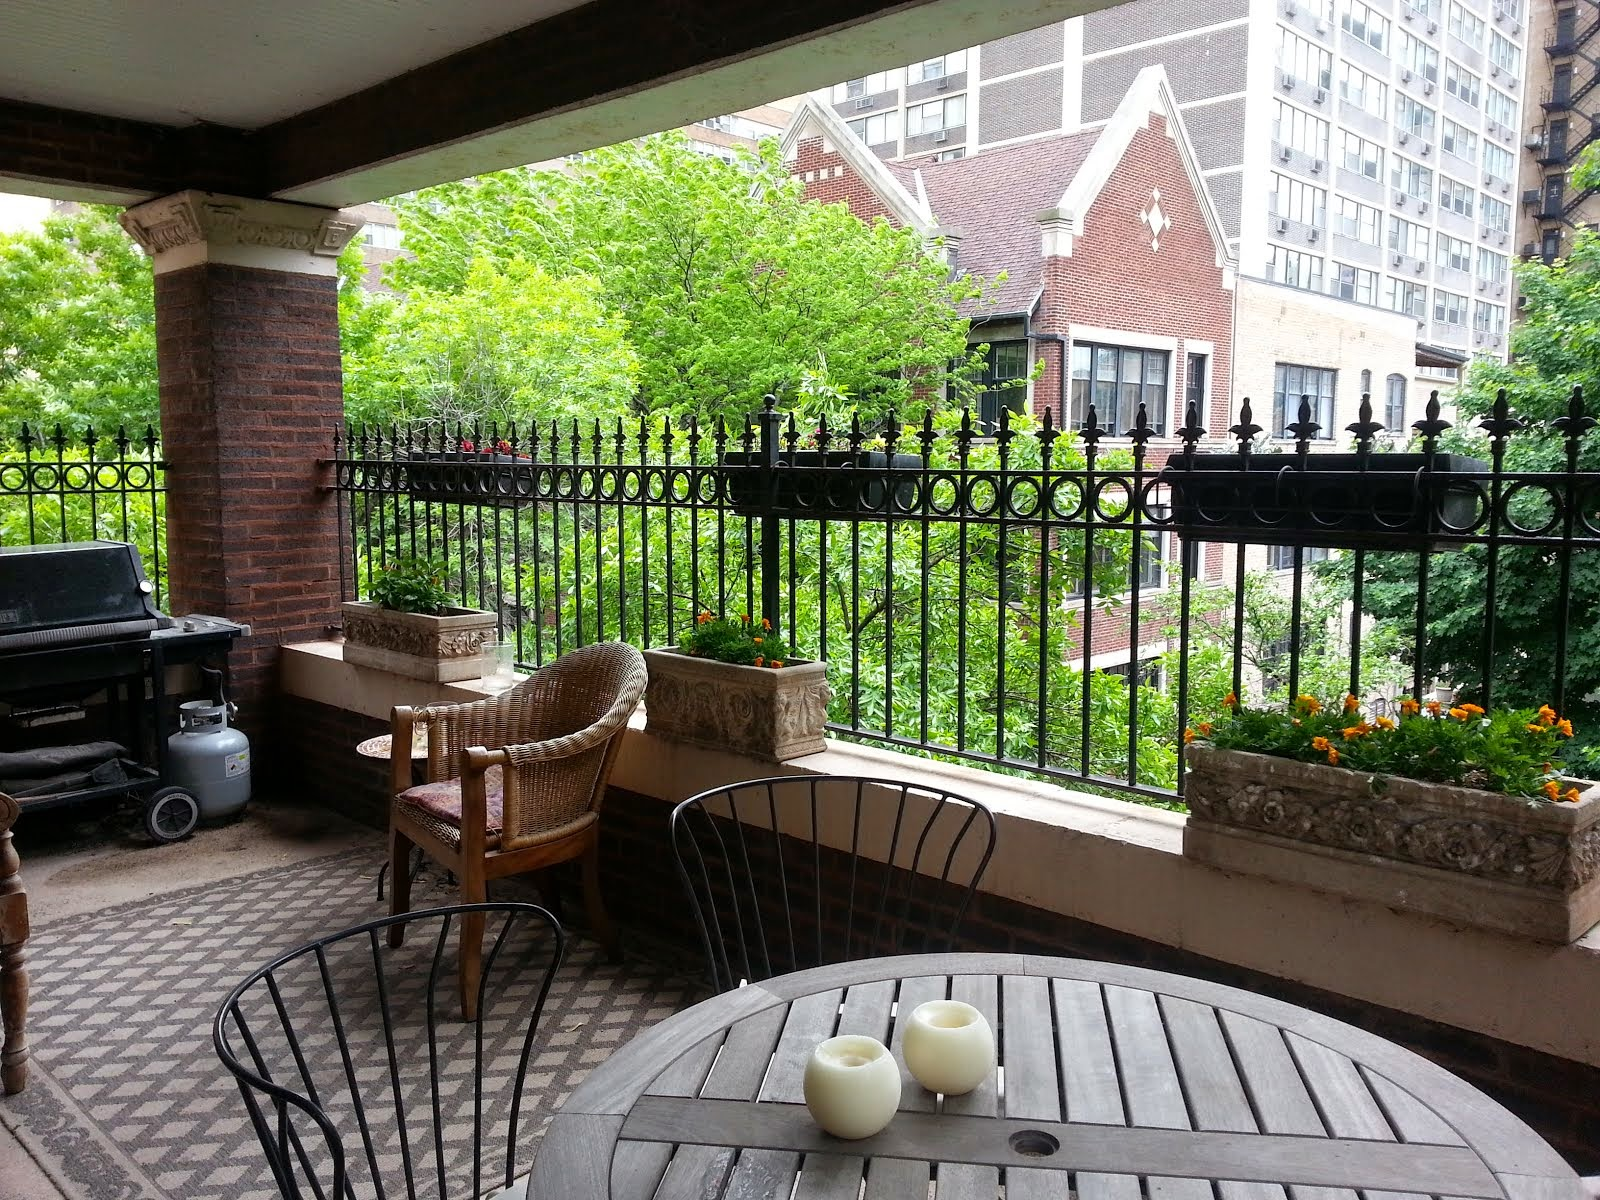 For Sale! East Lakeview penthouse $589,000